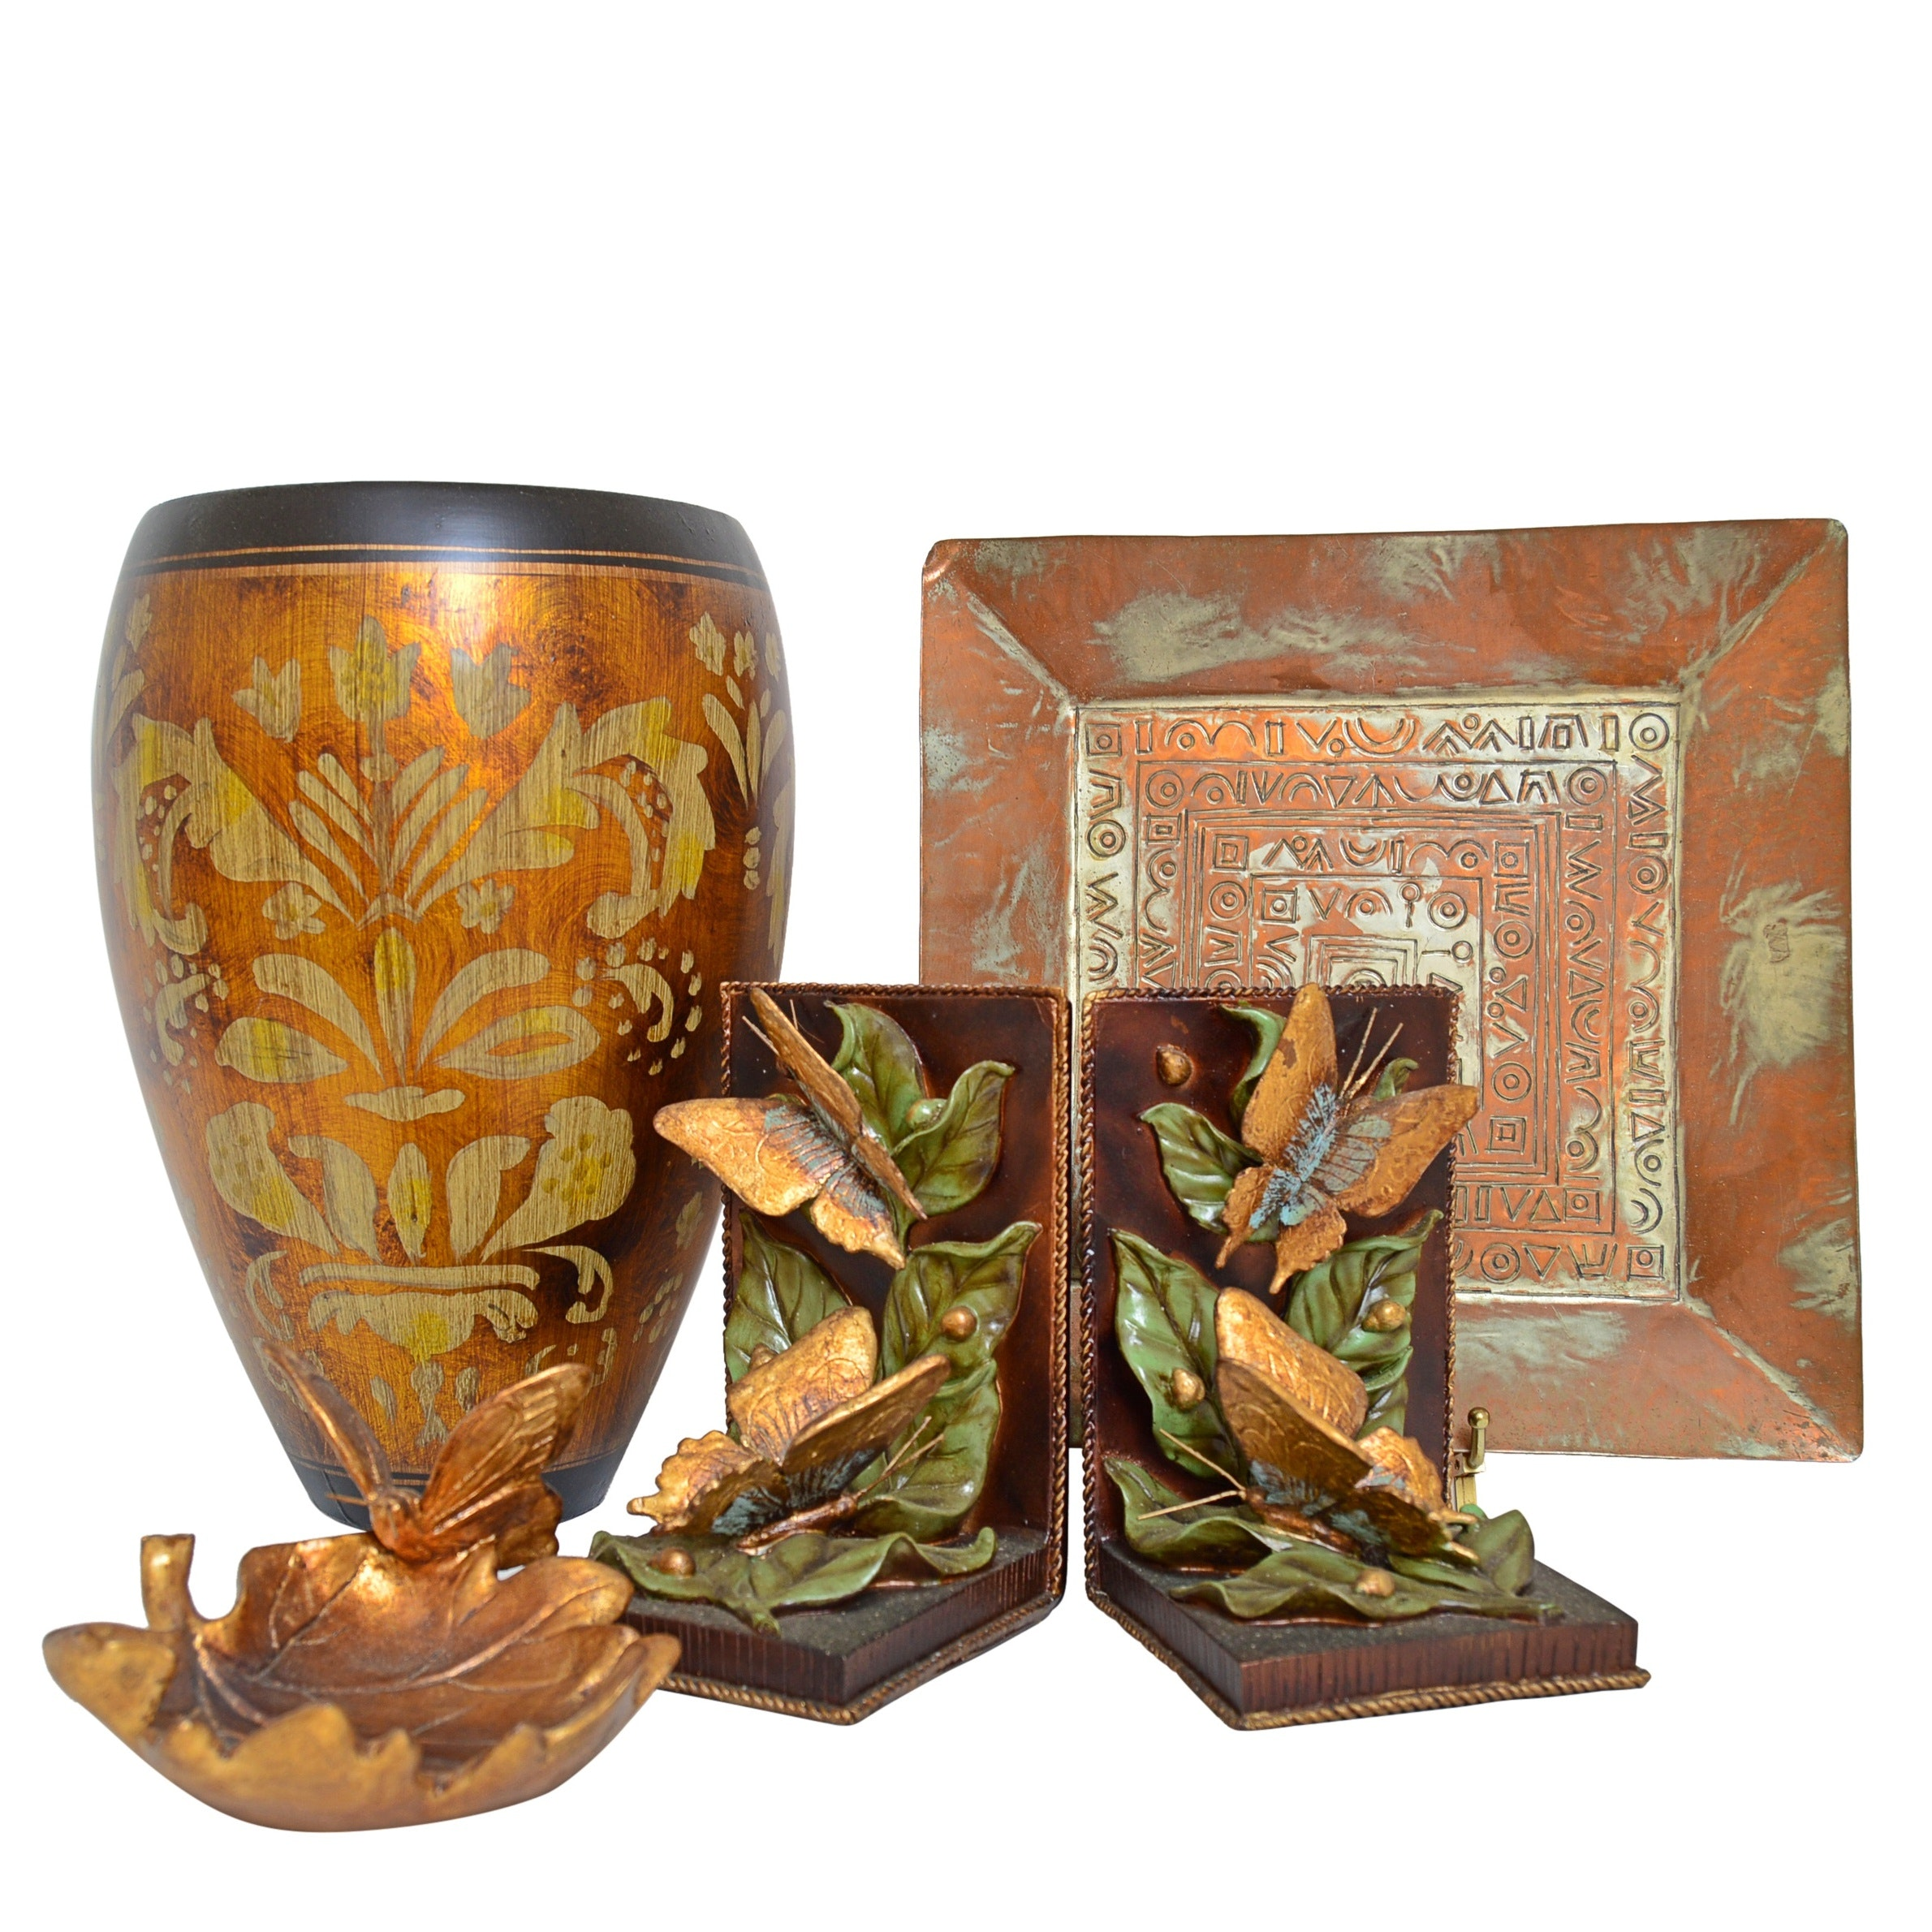 "Copper and Ceramic Decor with The Silky Way"" Bookends and Vase, Israeli Tray"